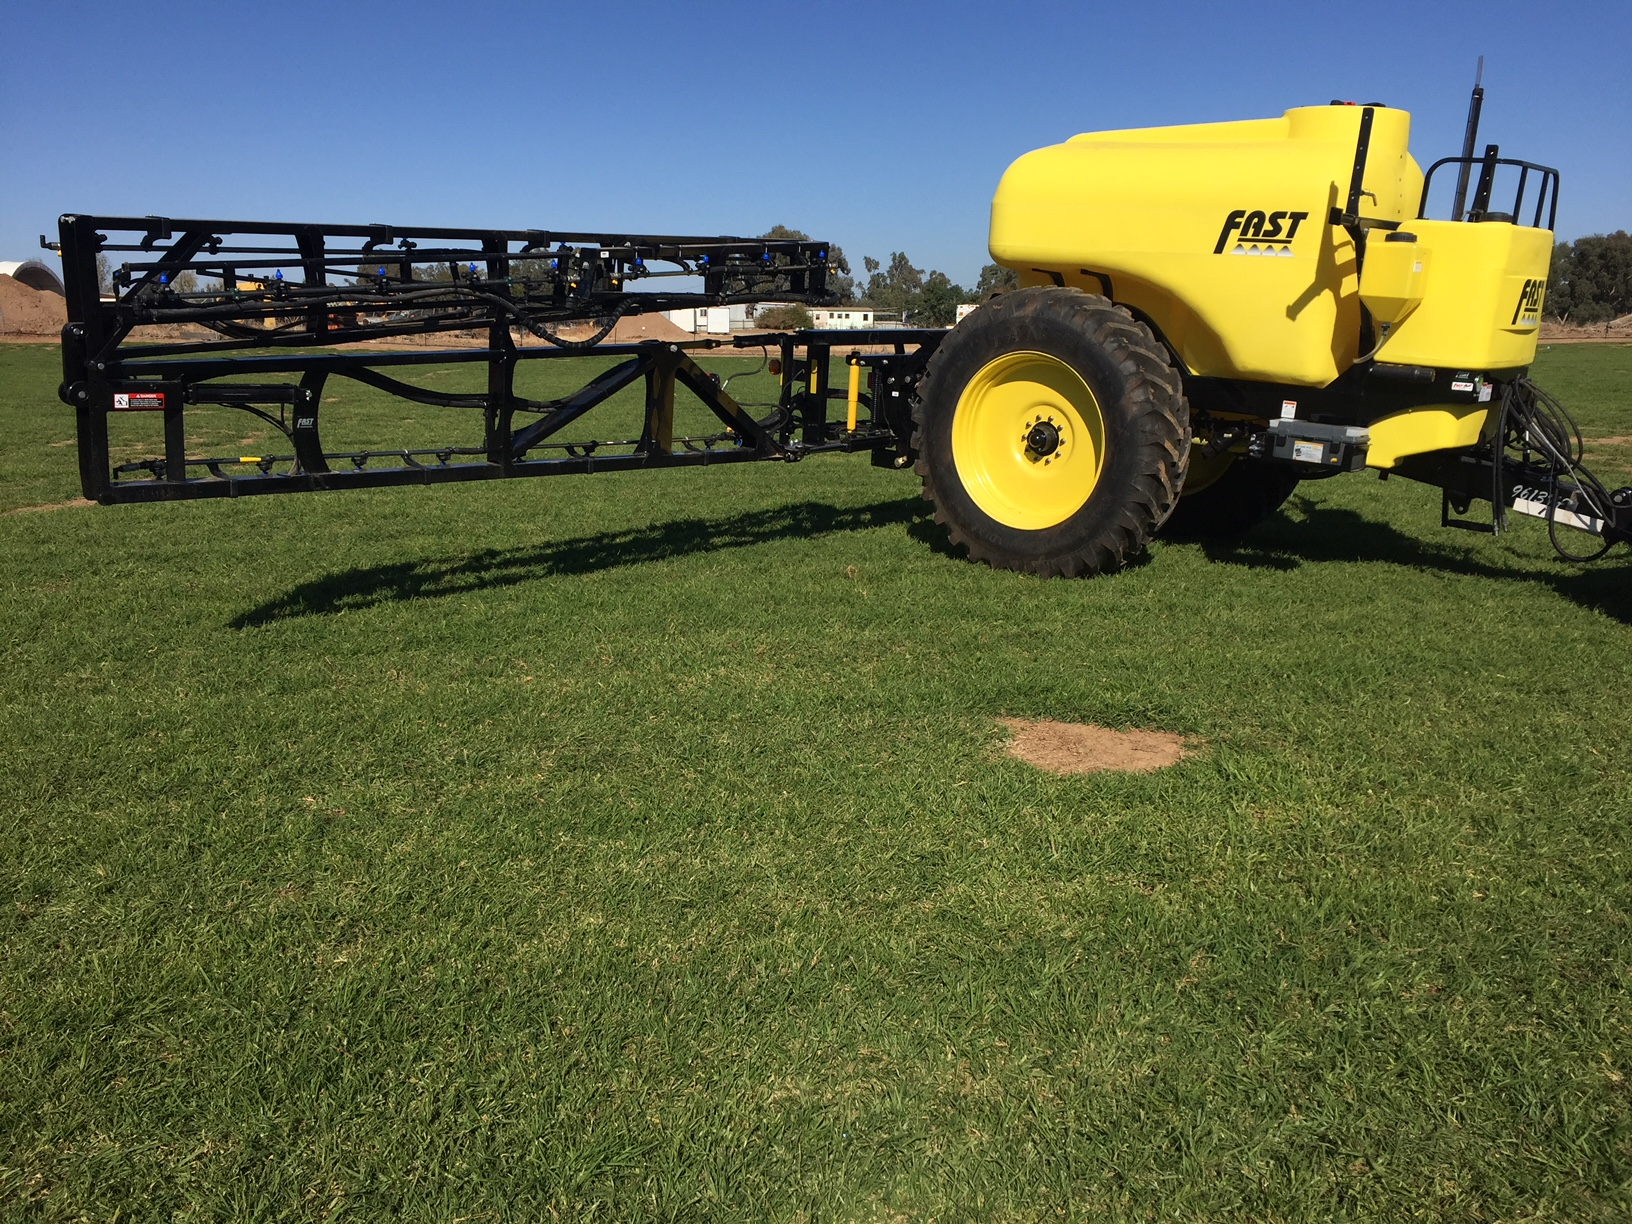 New Fast 5100 litre, 30 Metre boom - Image 2